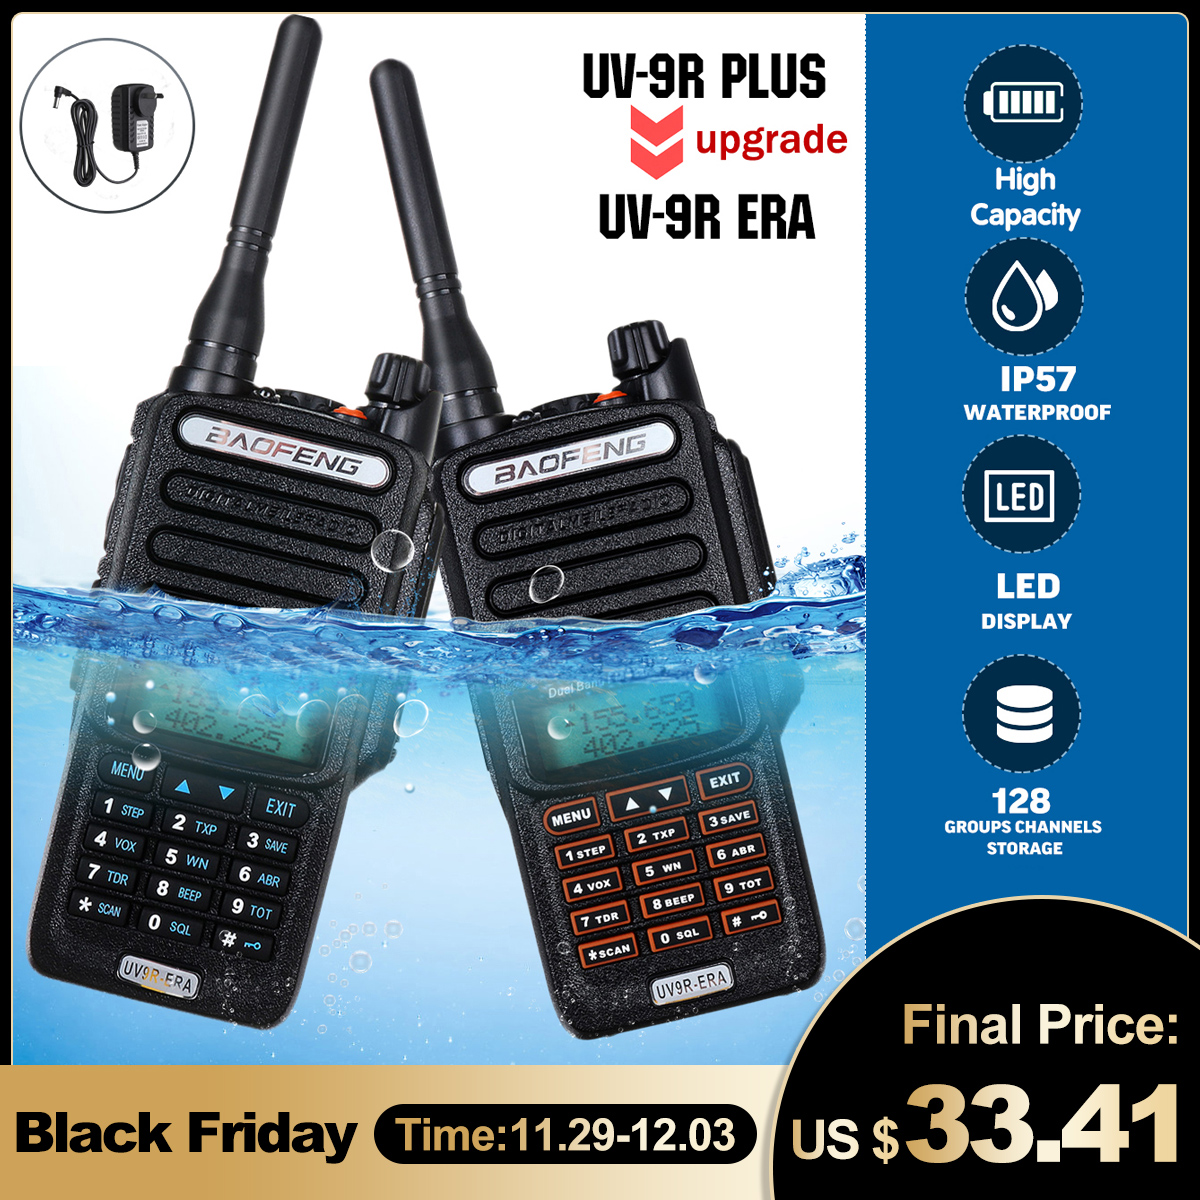 Baofeng UV9R-ERA Walkie Talkie Professional Radio Station Transceiver VHF UHF Portable Radio 15km Talk-Range 4800mah